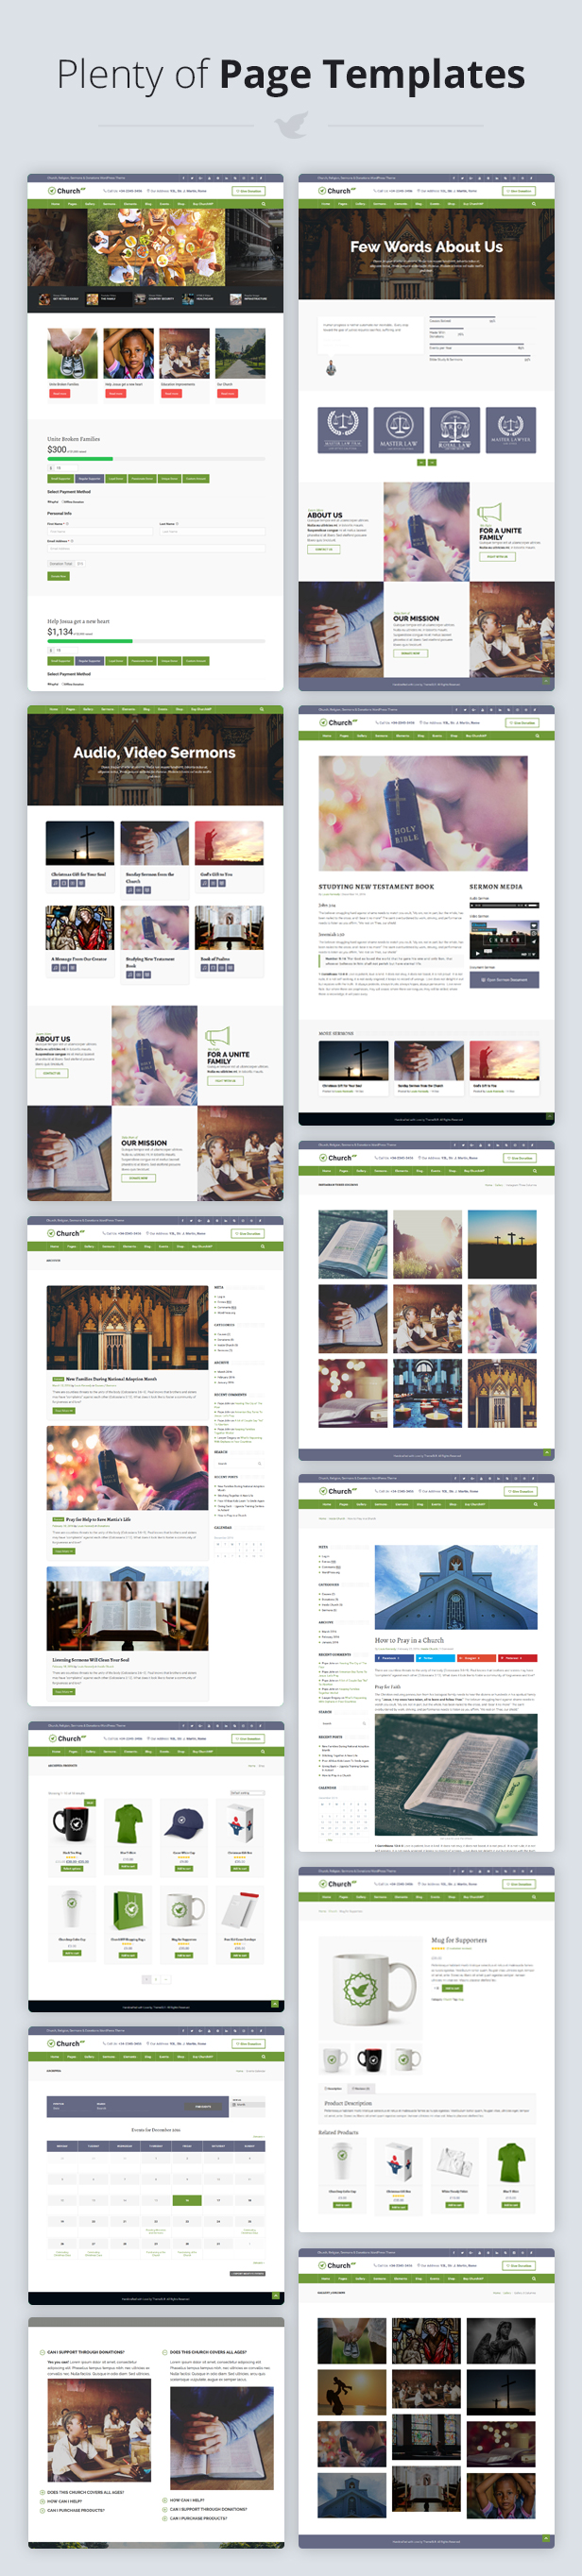 ChurchWP - A Contemporary WordPress Theme for Churches - 4